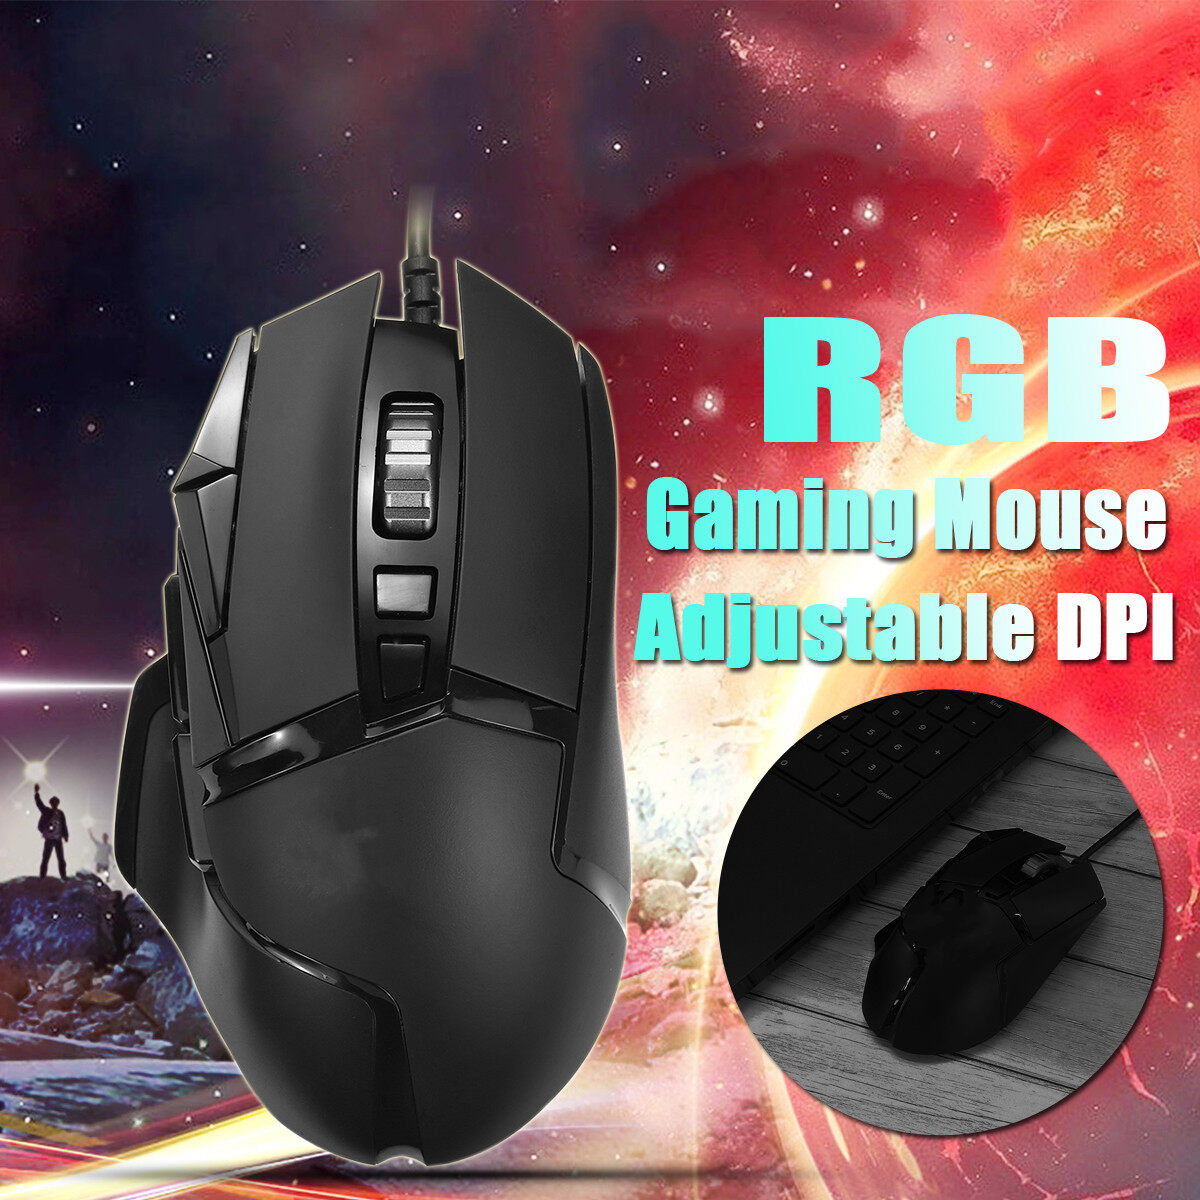 6600 Frames/Sec RGB Gaming Mouse Ergonomic Mice DPI 4 Gear Adjustable for Windows Mac Android